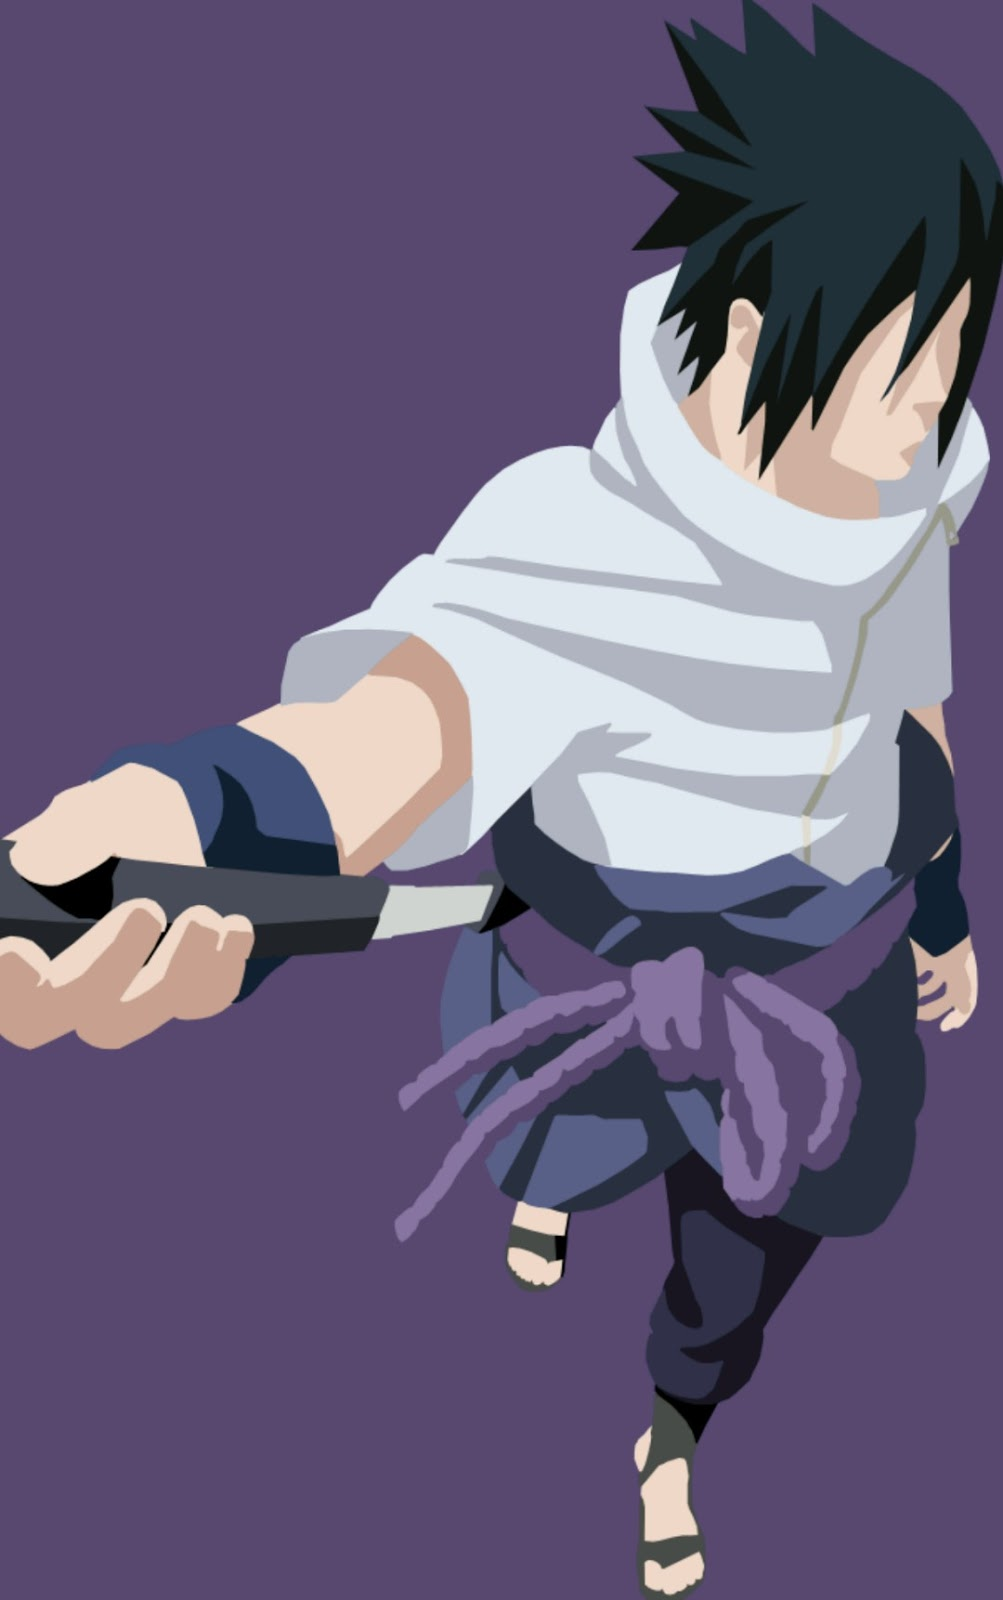 8. Download wallpaper uchiha sasuke vektor untuk android dan whatsApp chat